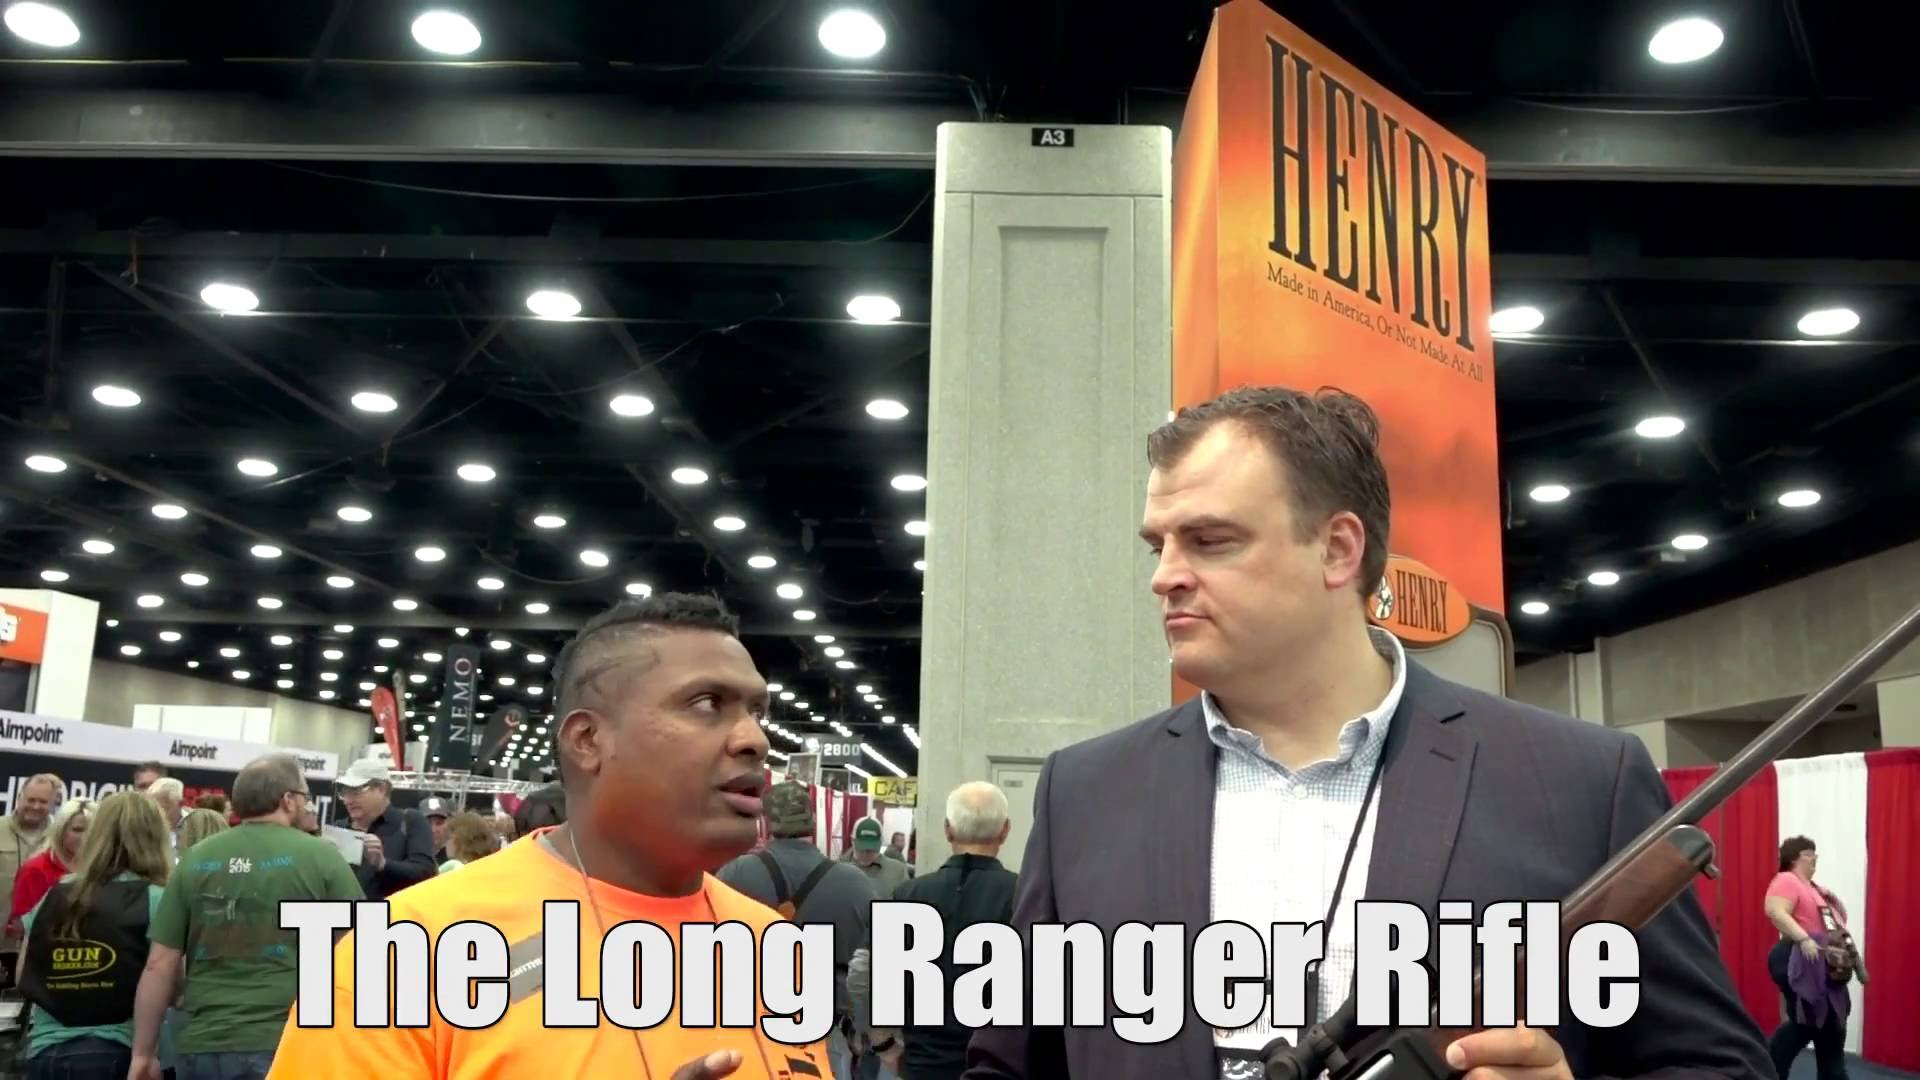 The Long Ranger Rifle NRA 2016